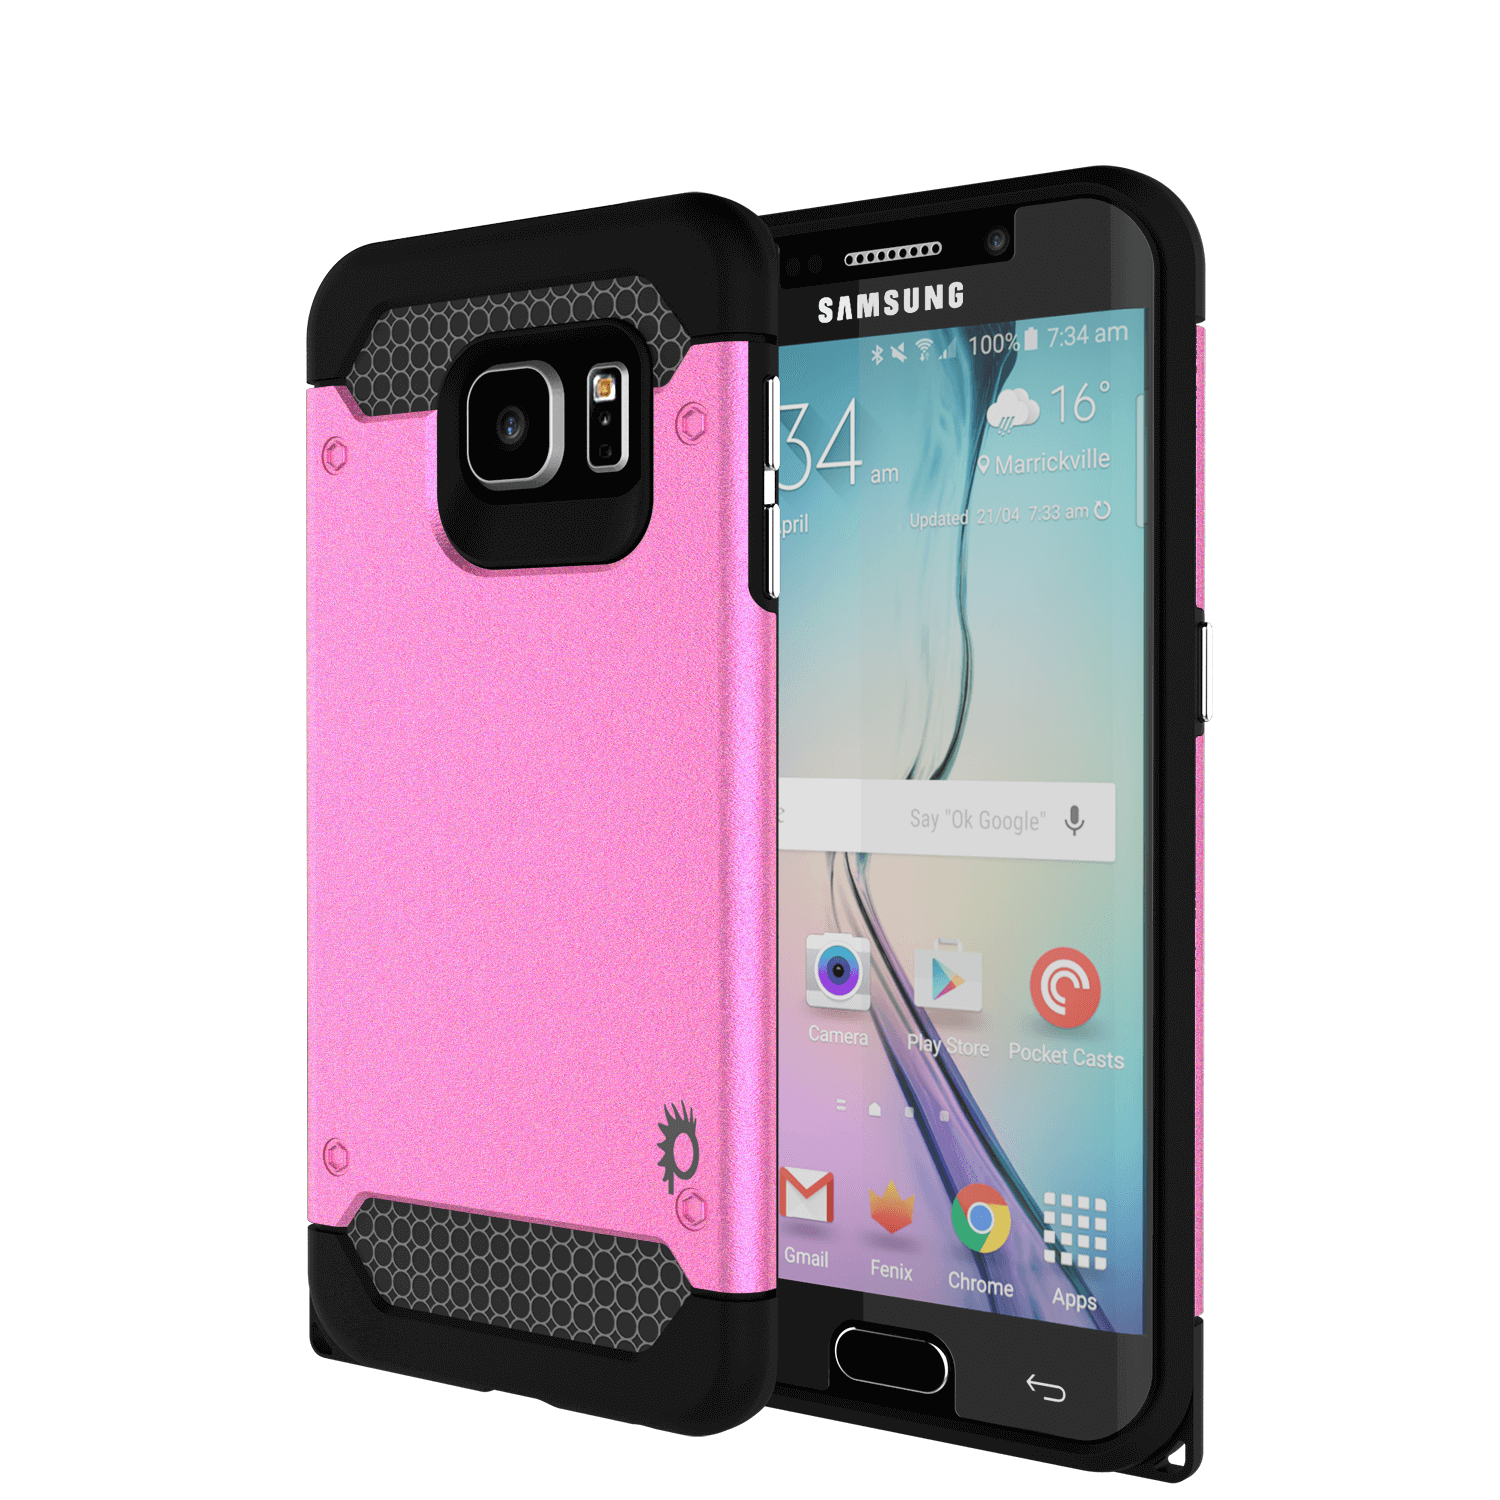 Galaxy s6 EDGE Case PunkCase Galactic Pink Series Slim Protective Armor Soft Cover Case w/ Tempered Glass Protector Lifetime Warranty